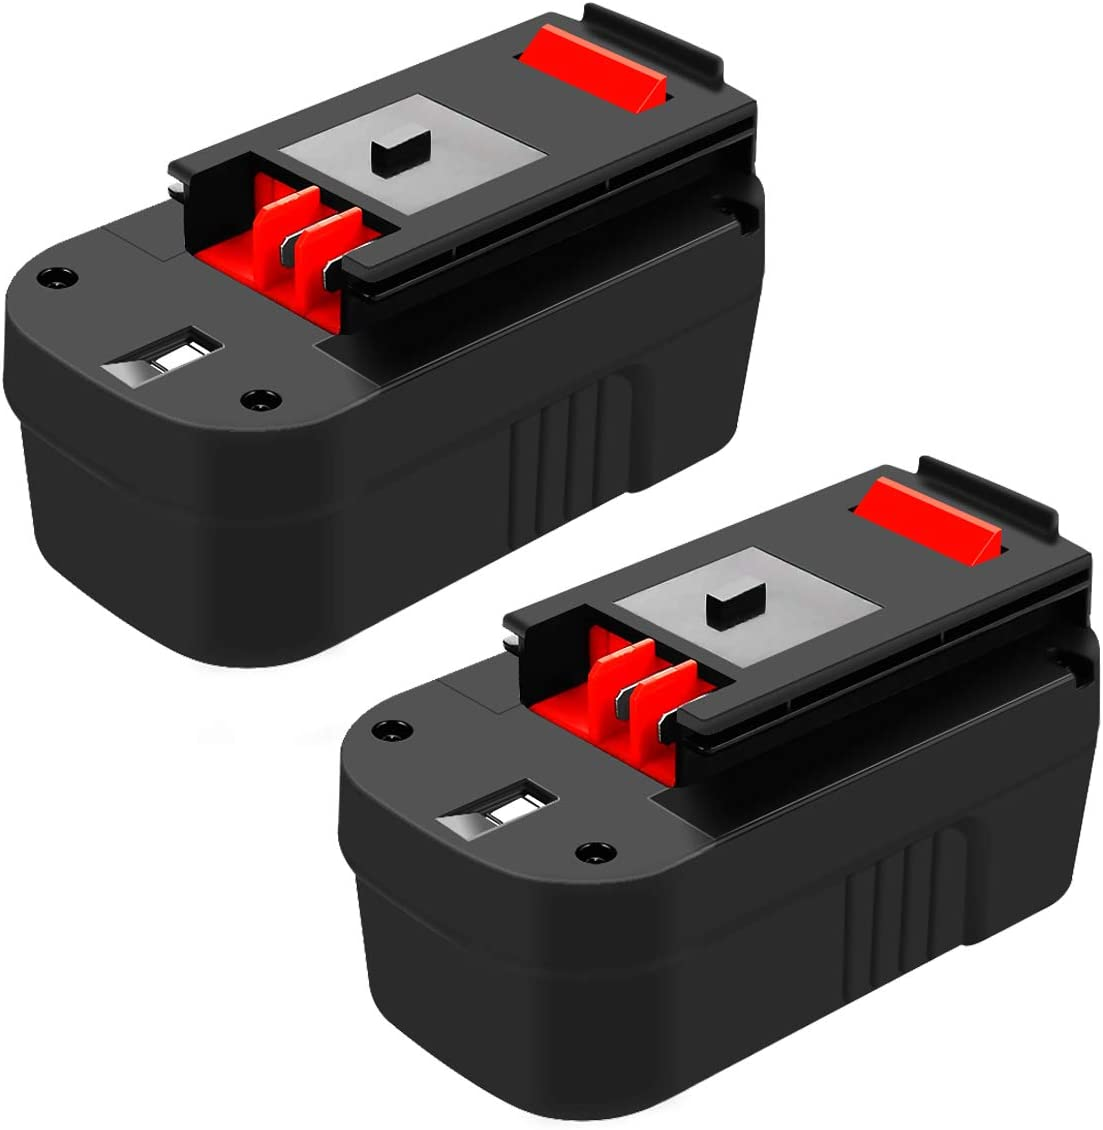 2 Pack 3.6Ah HPB18 Battery Replacement Compatible with Black and Decker 18 Volt Firestorm HPB18-OPE FSB18 FS18FL FS180BX A1718 244760-00 FS18BX FS18FL Cordless Power Tools